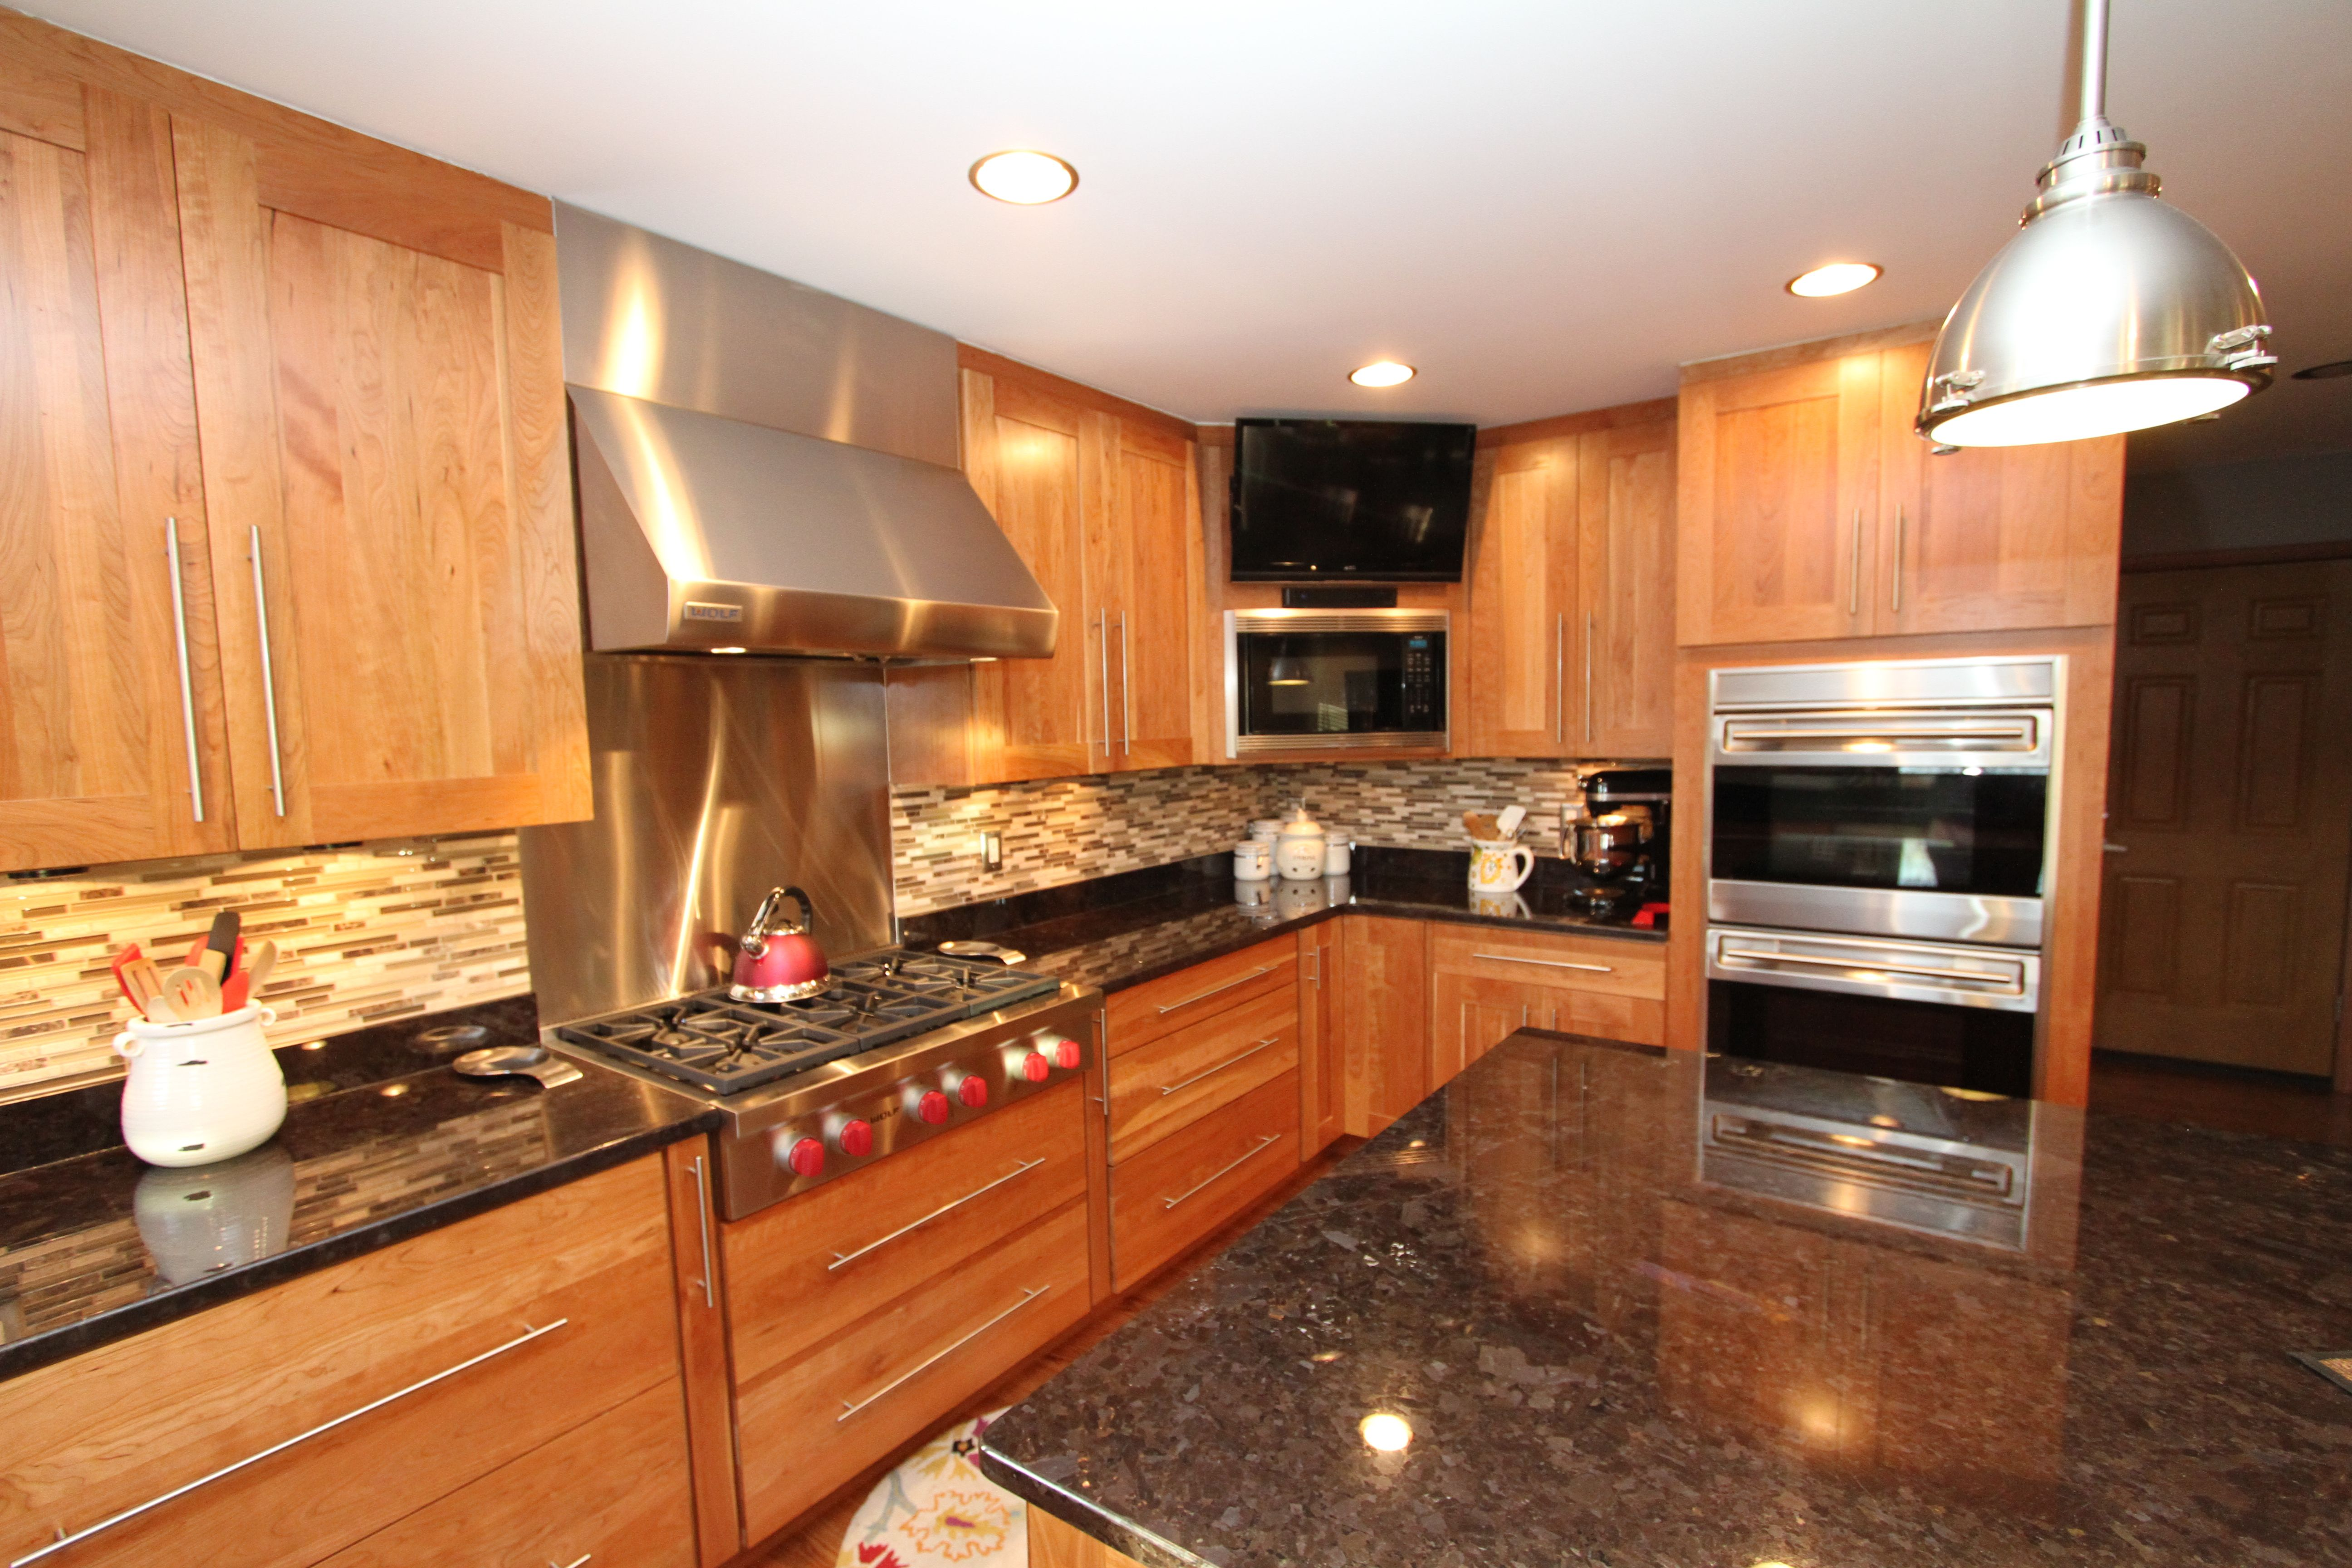 Natural Cherry Cabinets With Granite Countertops An Oversized